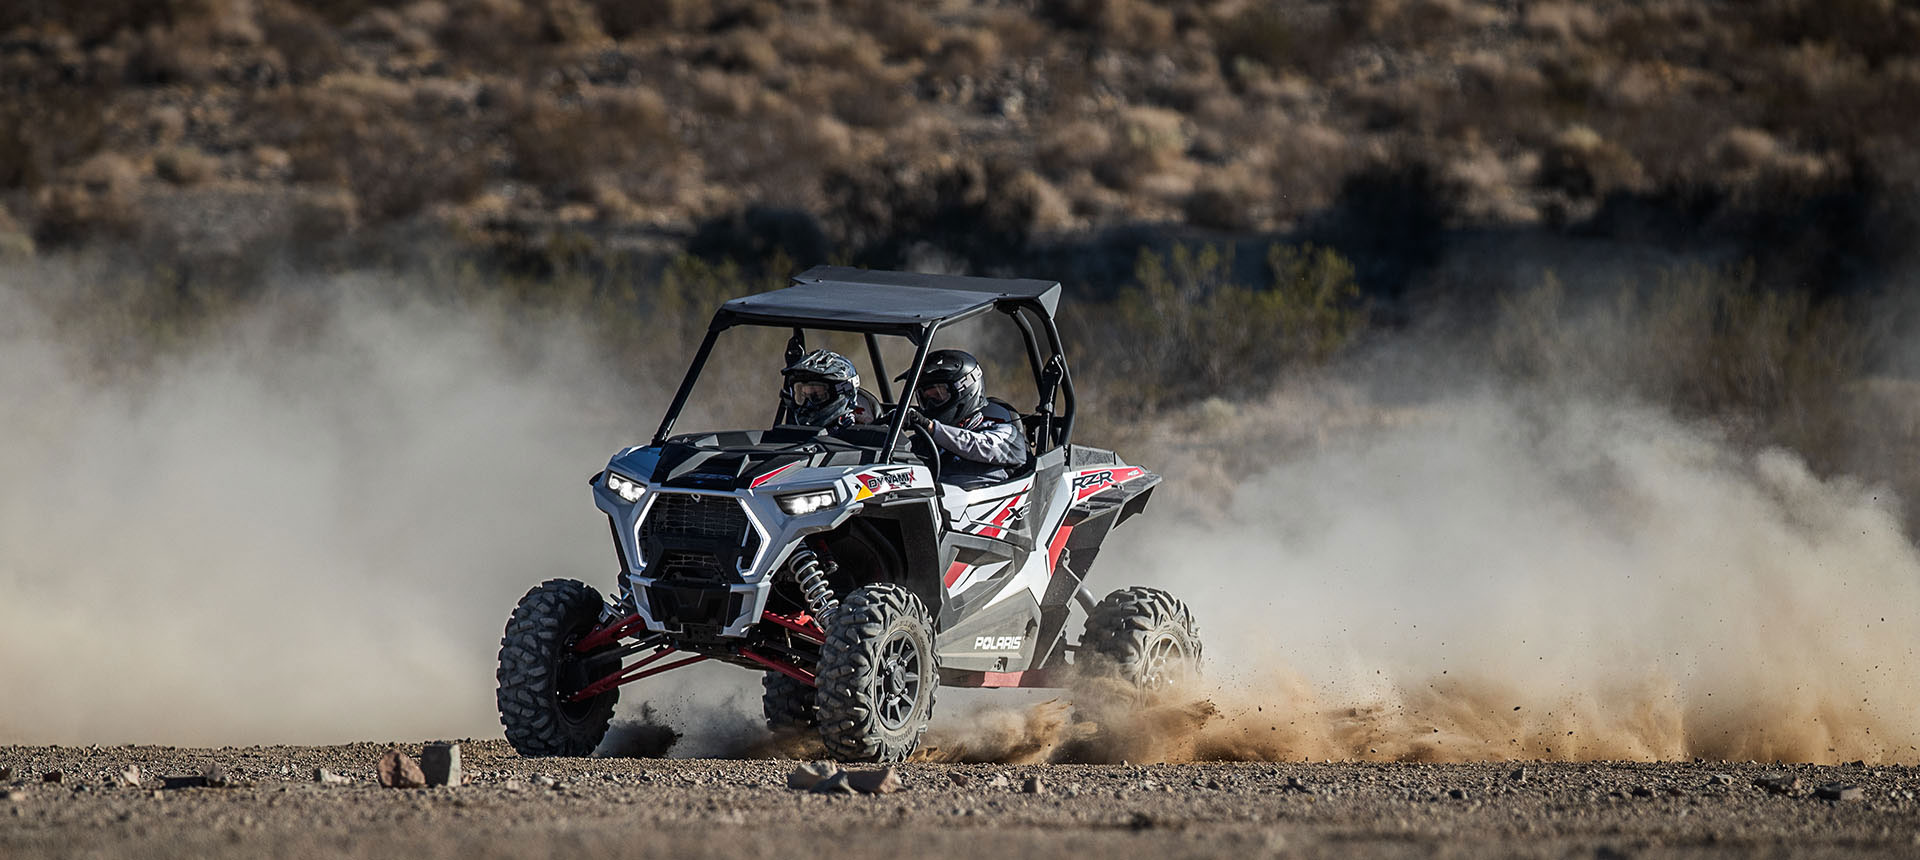 2019 Polaris RZR XP 1000 in Elkhart, Indiana - Photo 2